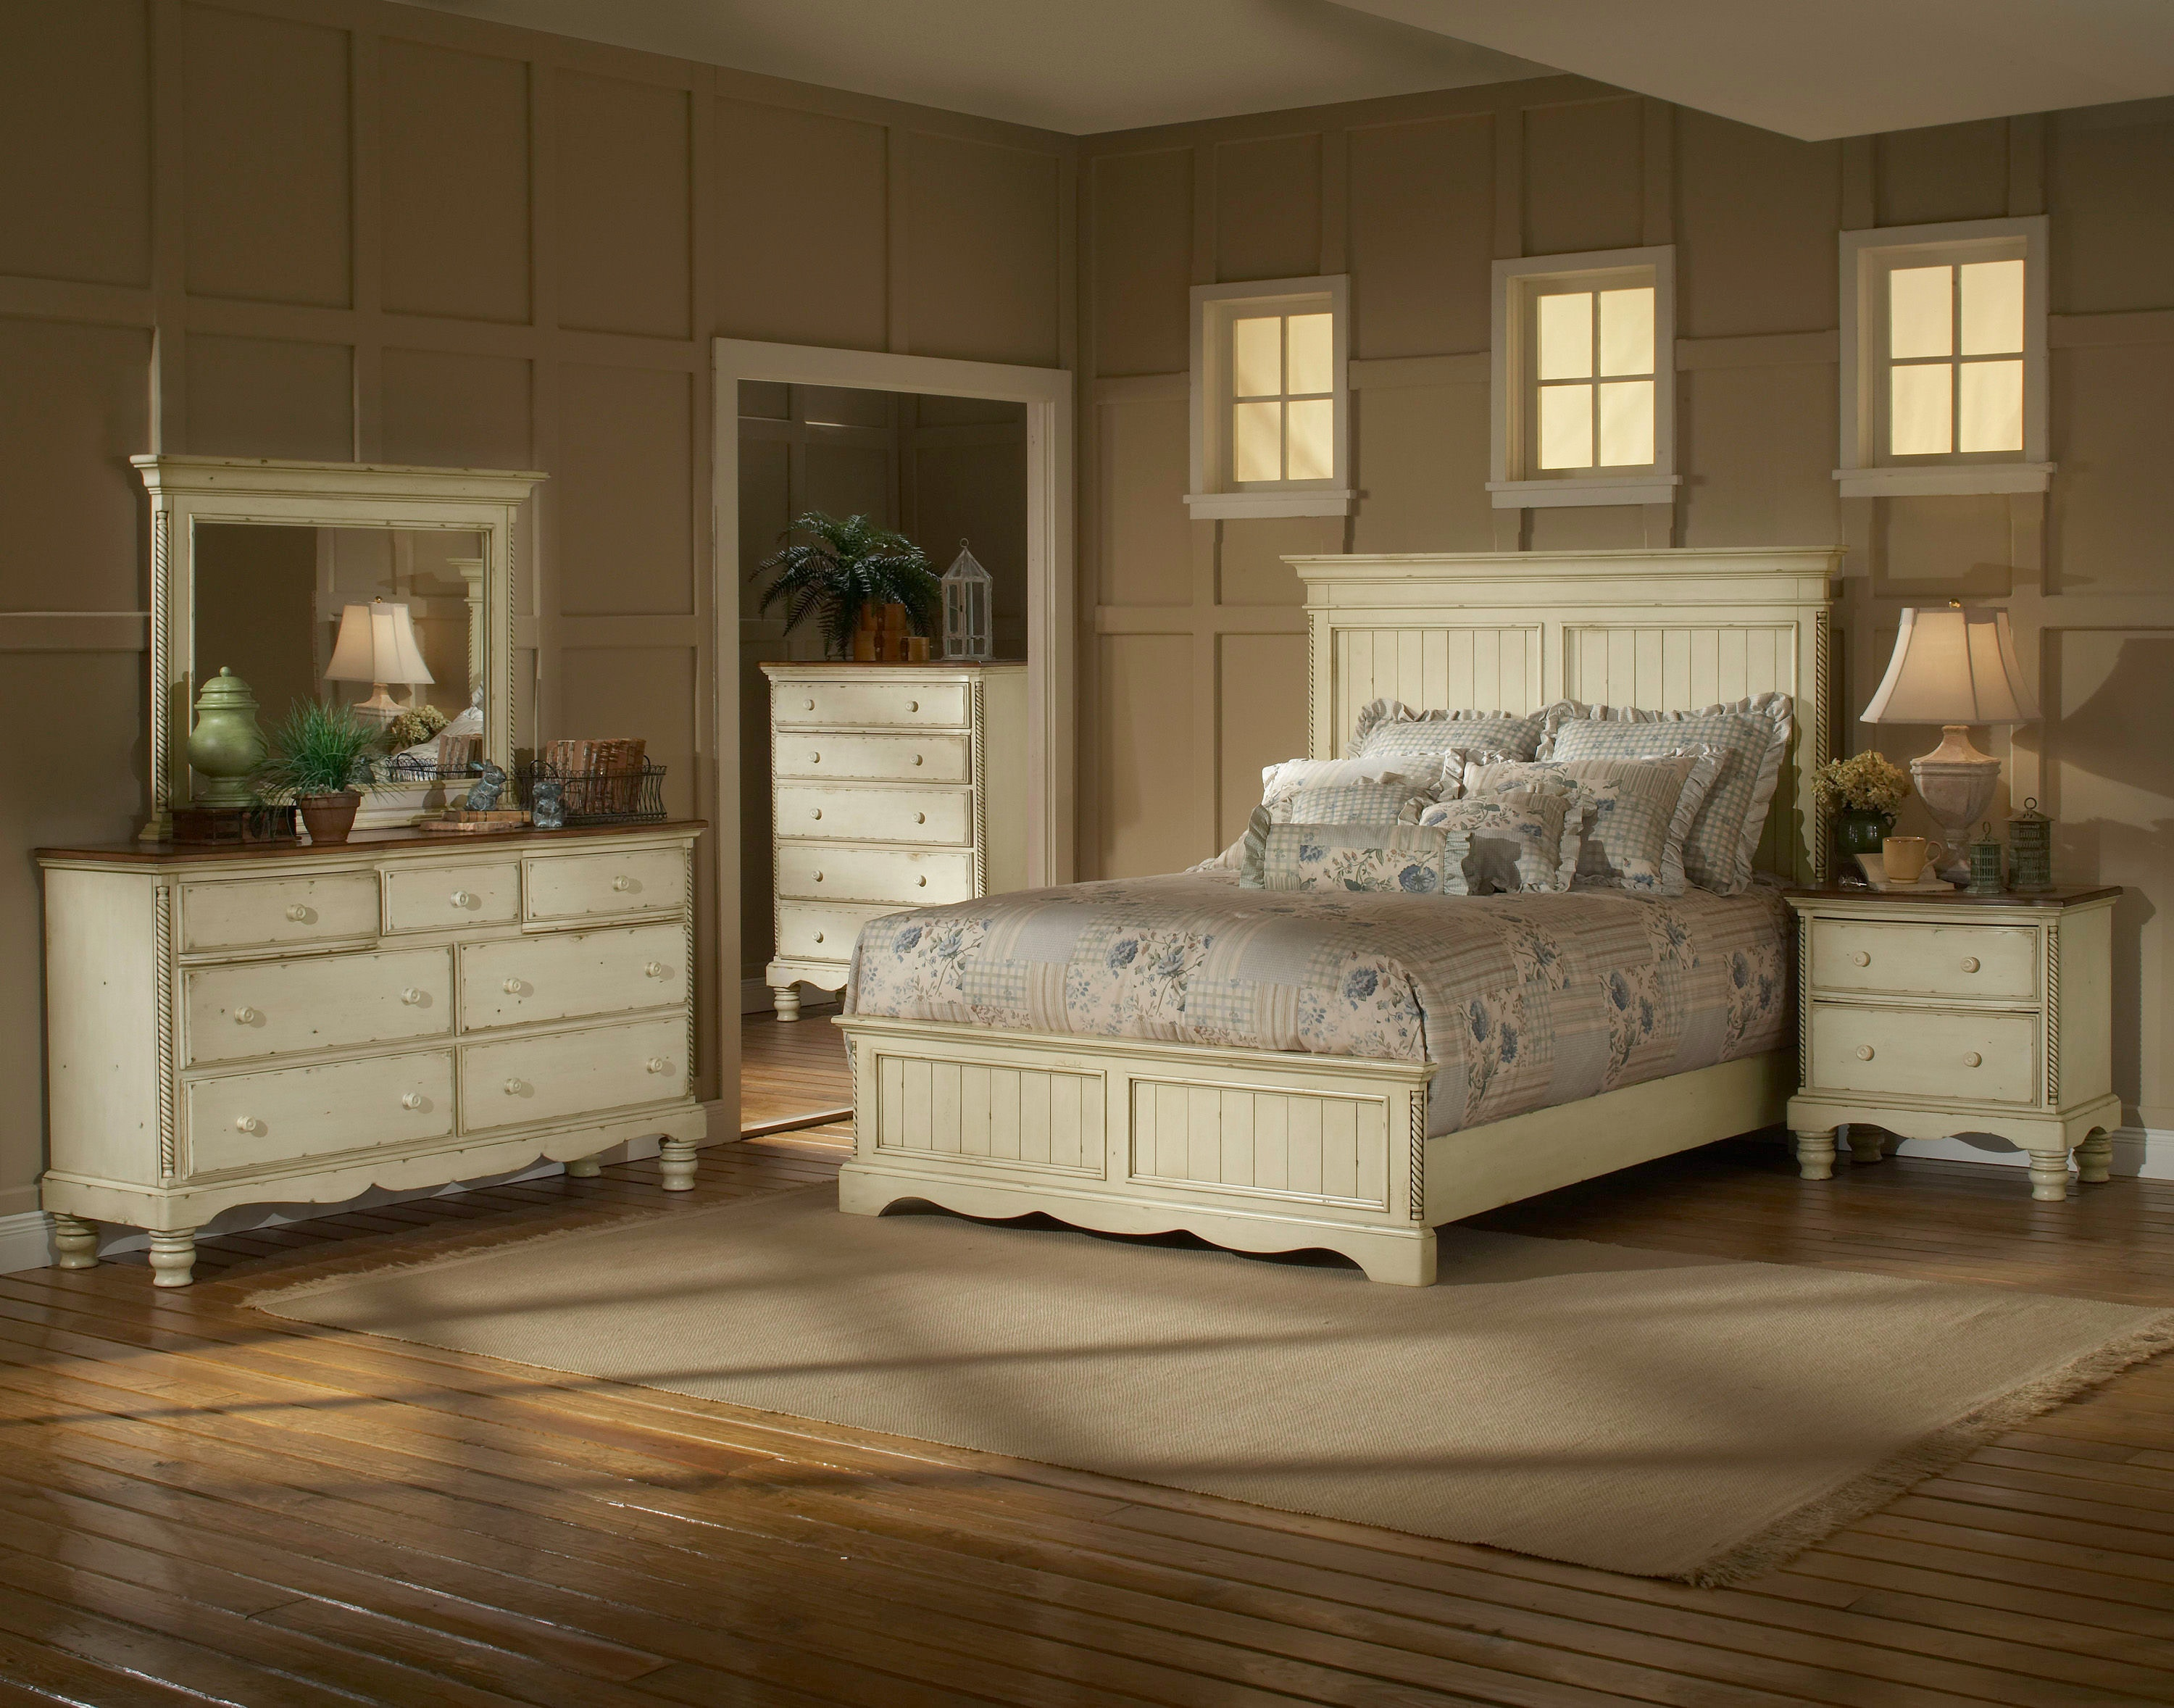 Charmant Hillsdale Furniture Bedroom Wilshire Panel Bed Headboard   King 1172 673 At  Daws Home Furnishings